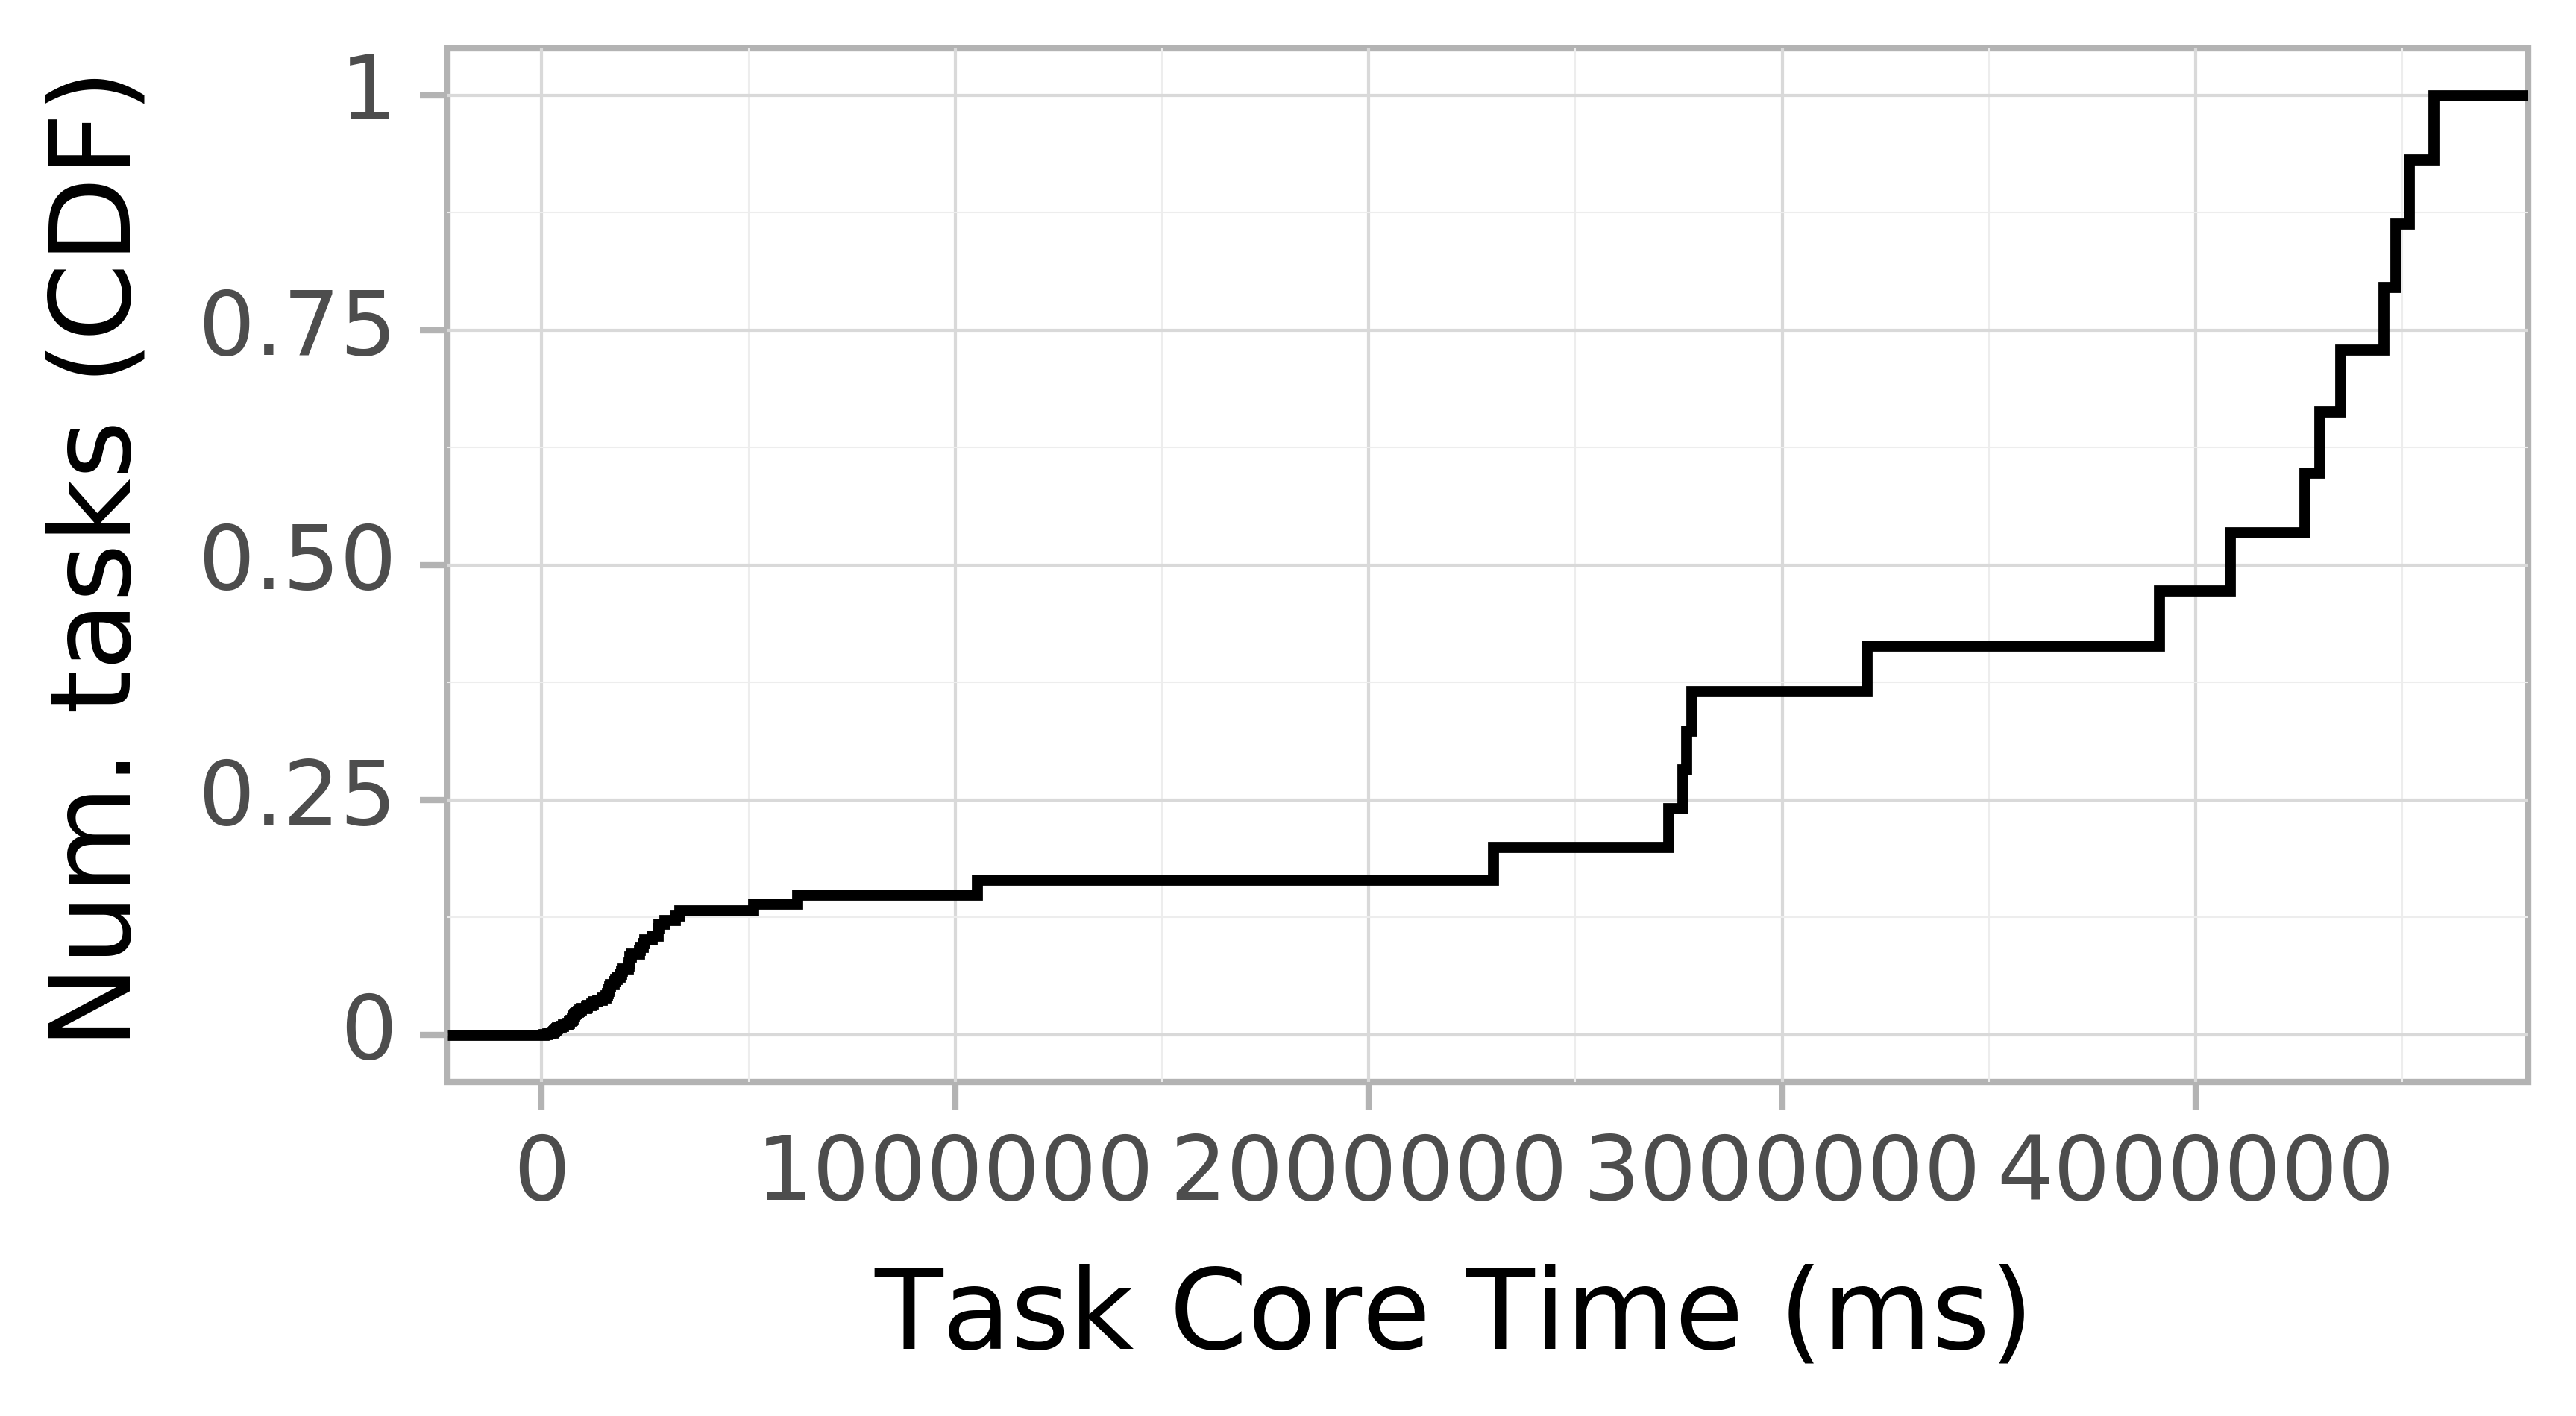 task resource time CDF graph for the Pegasus_P5 trace.